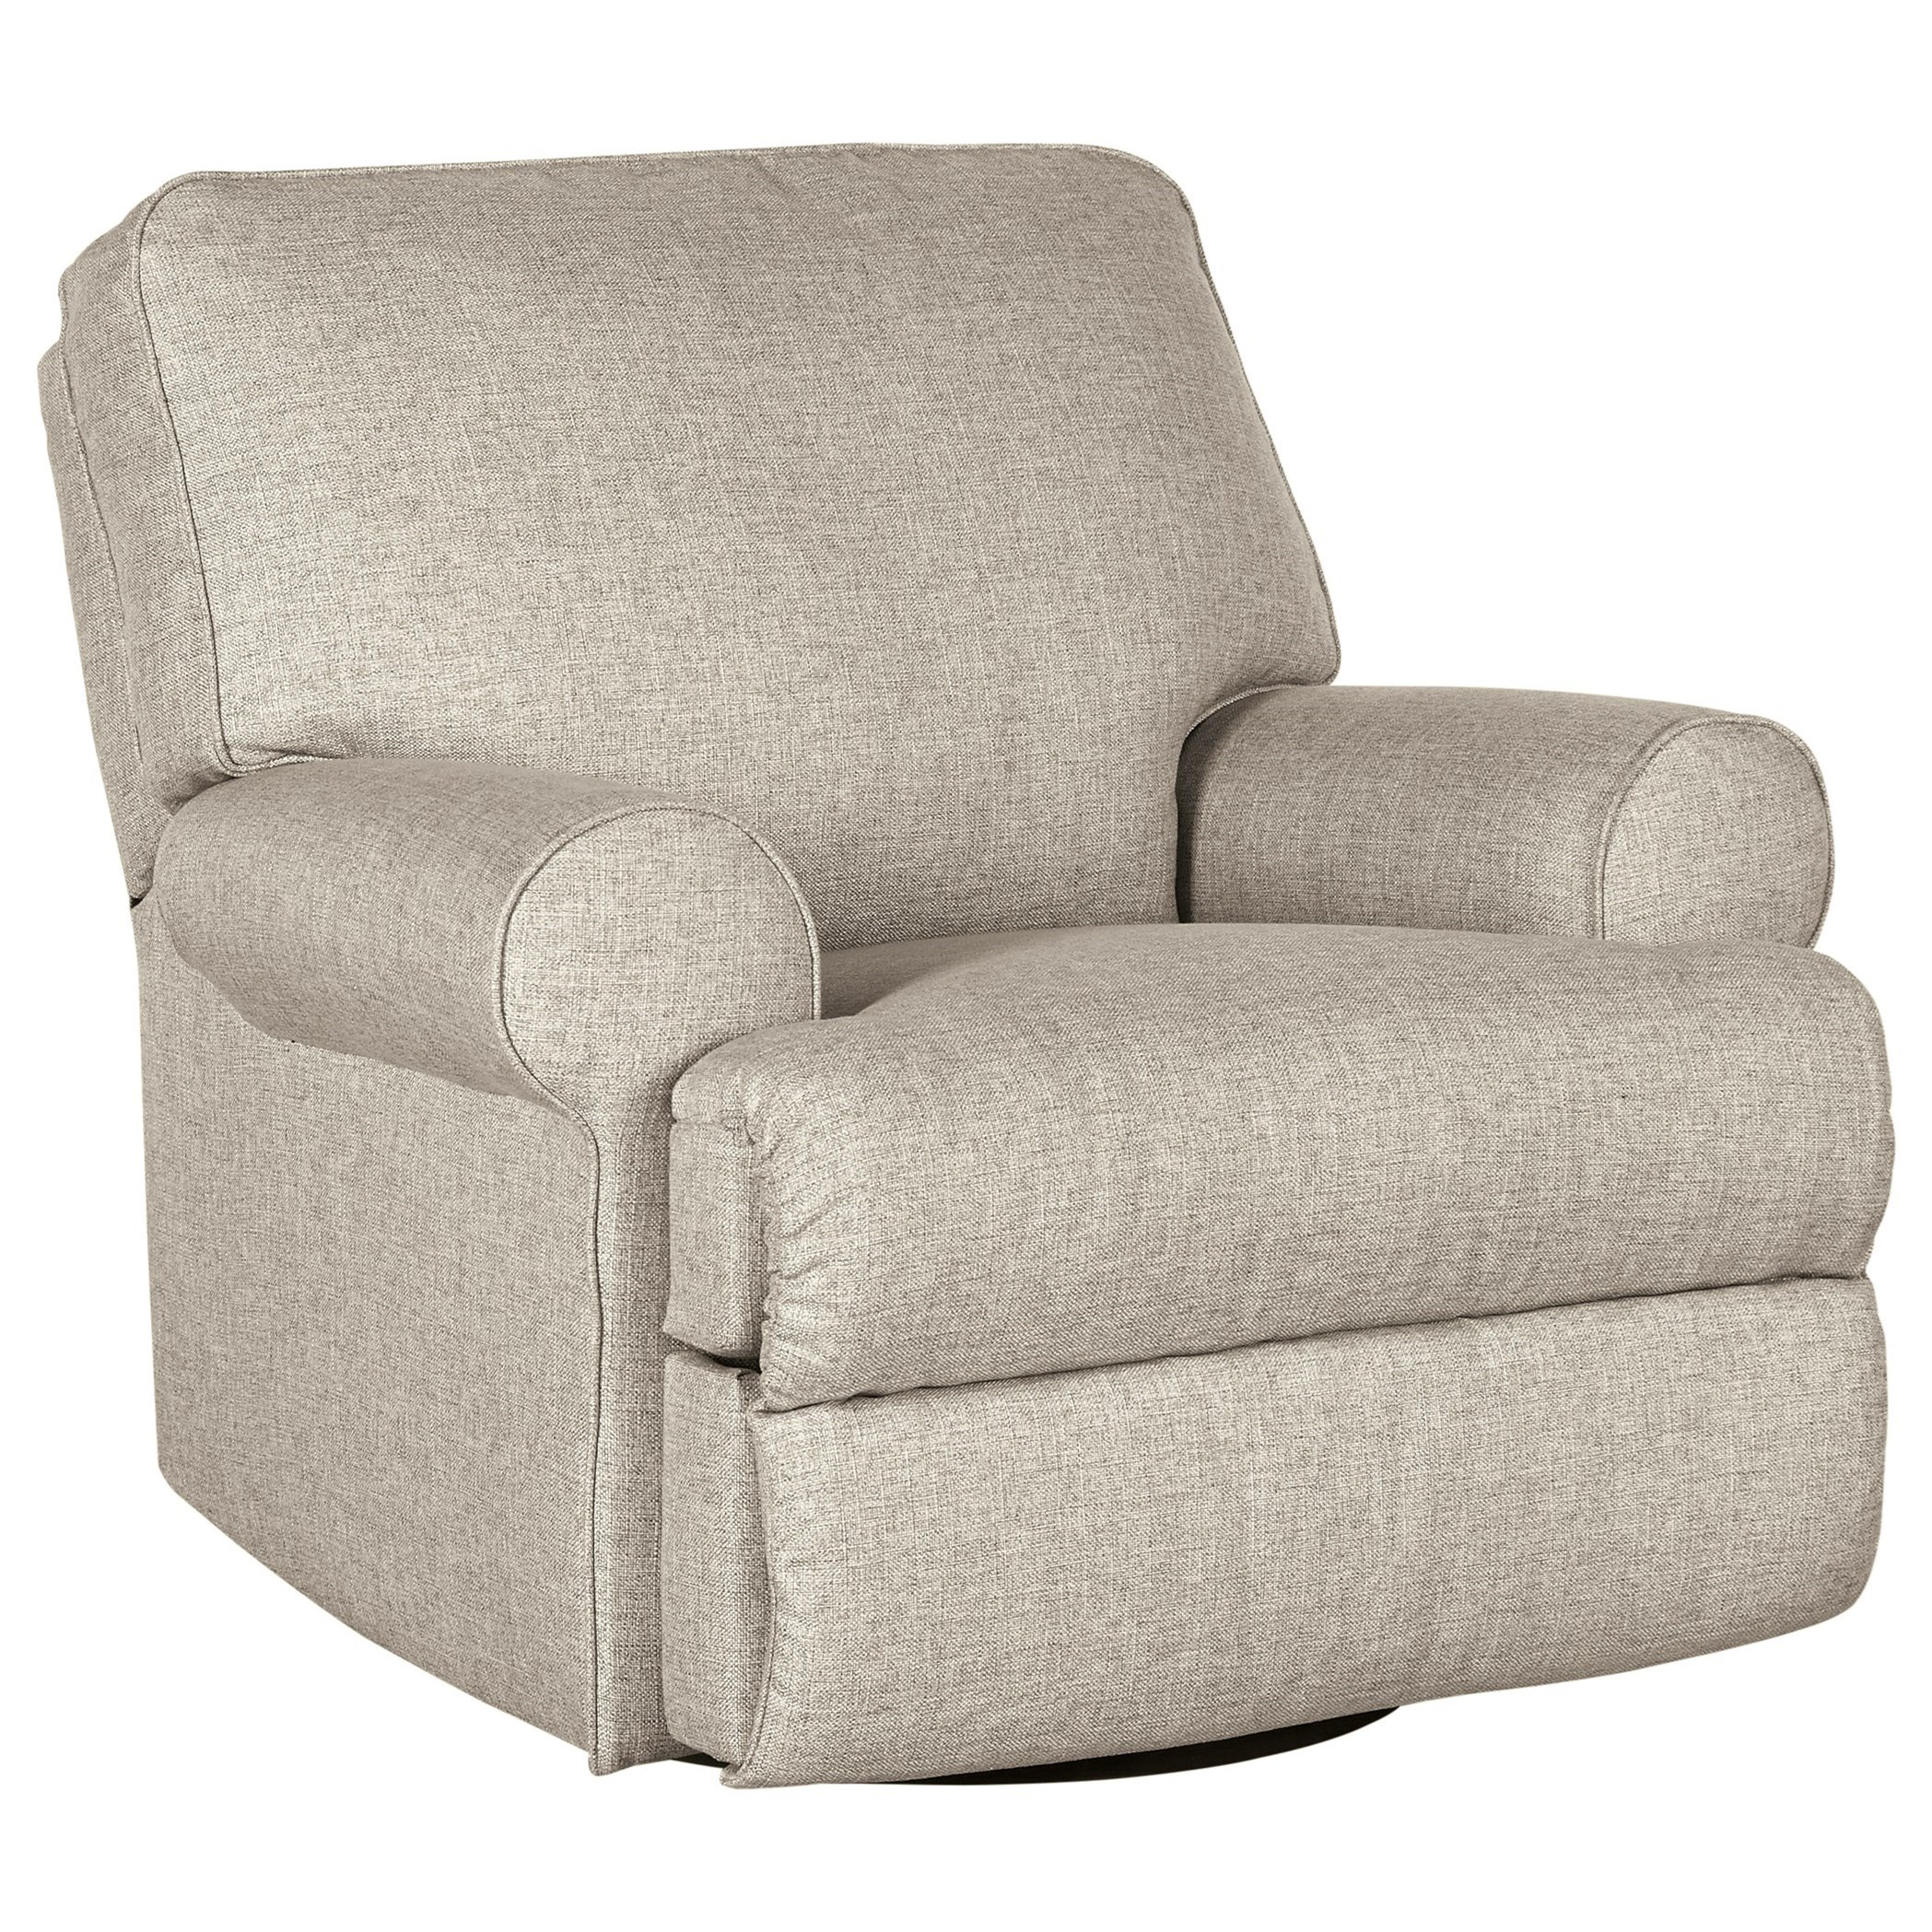 Ferncliff Ferncliff Swivel Glider Recliner by Ashley at Morris Home